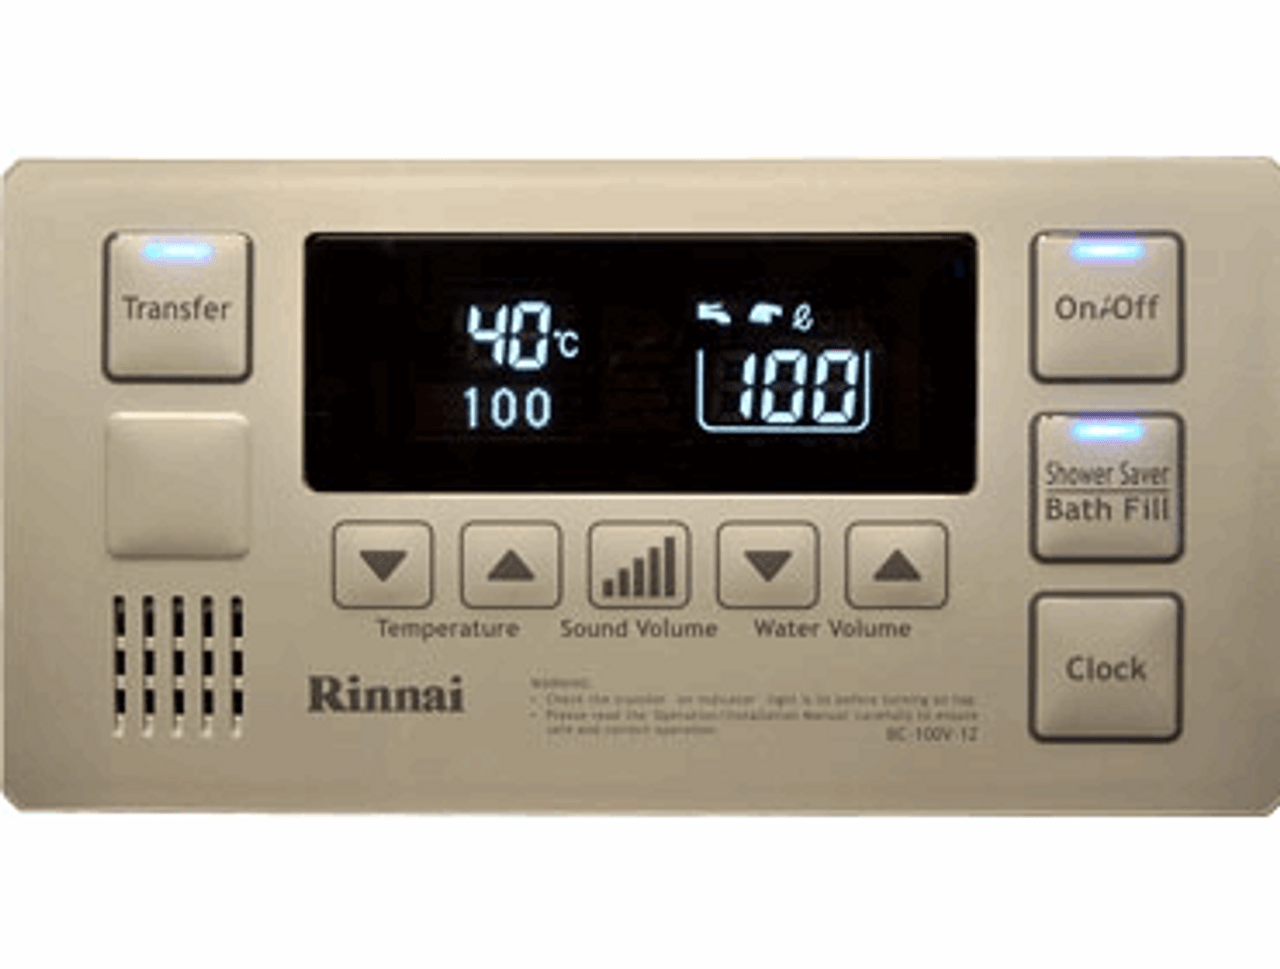 Rinnai Infinity Bathroom Deluxe Controller